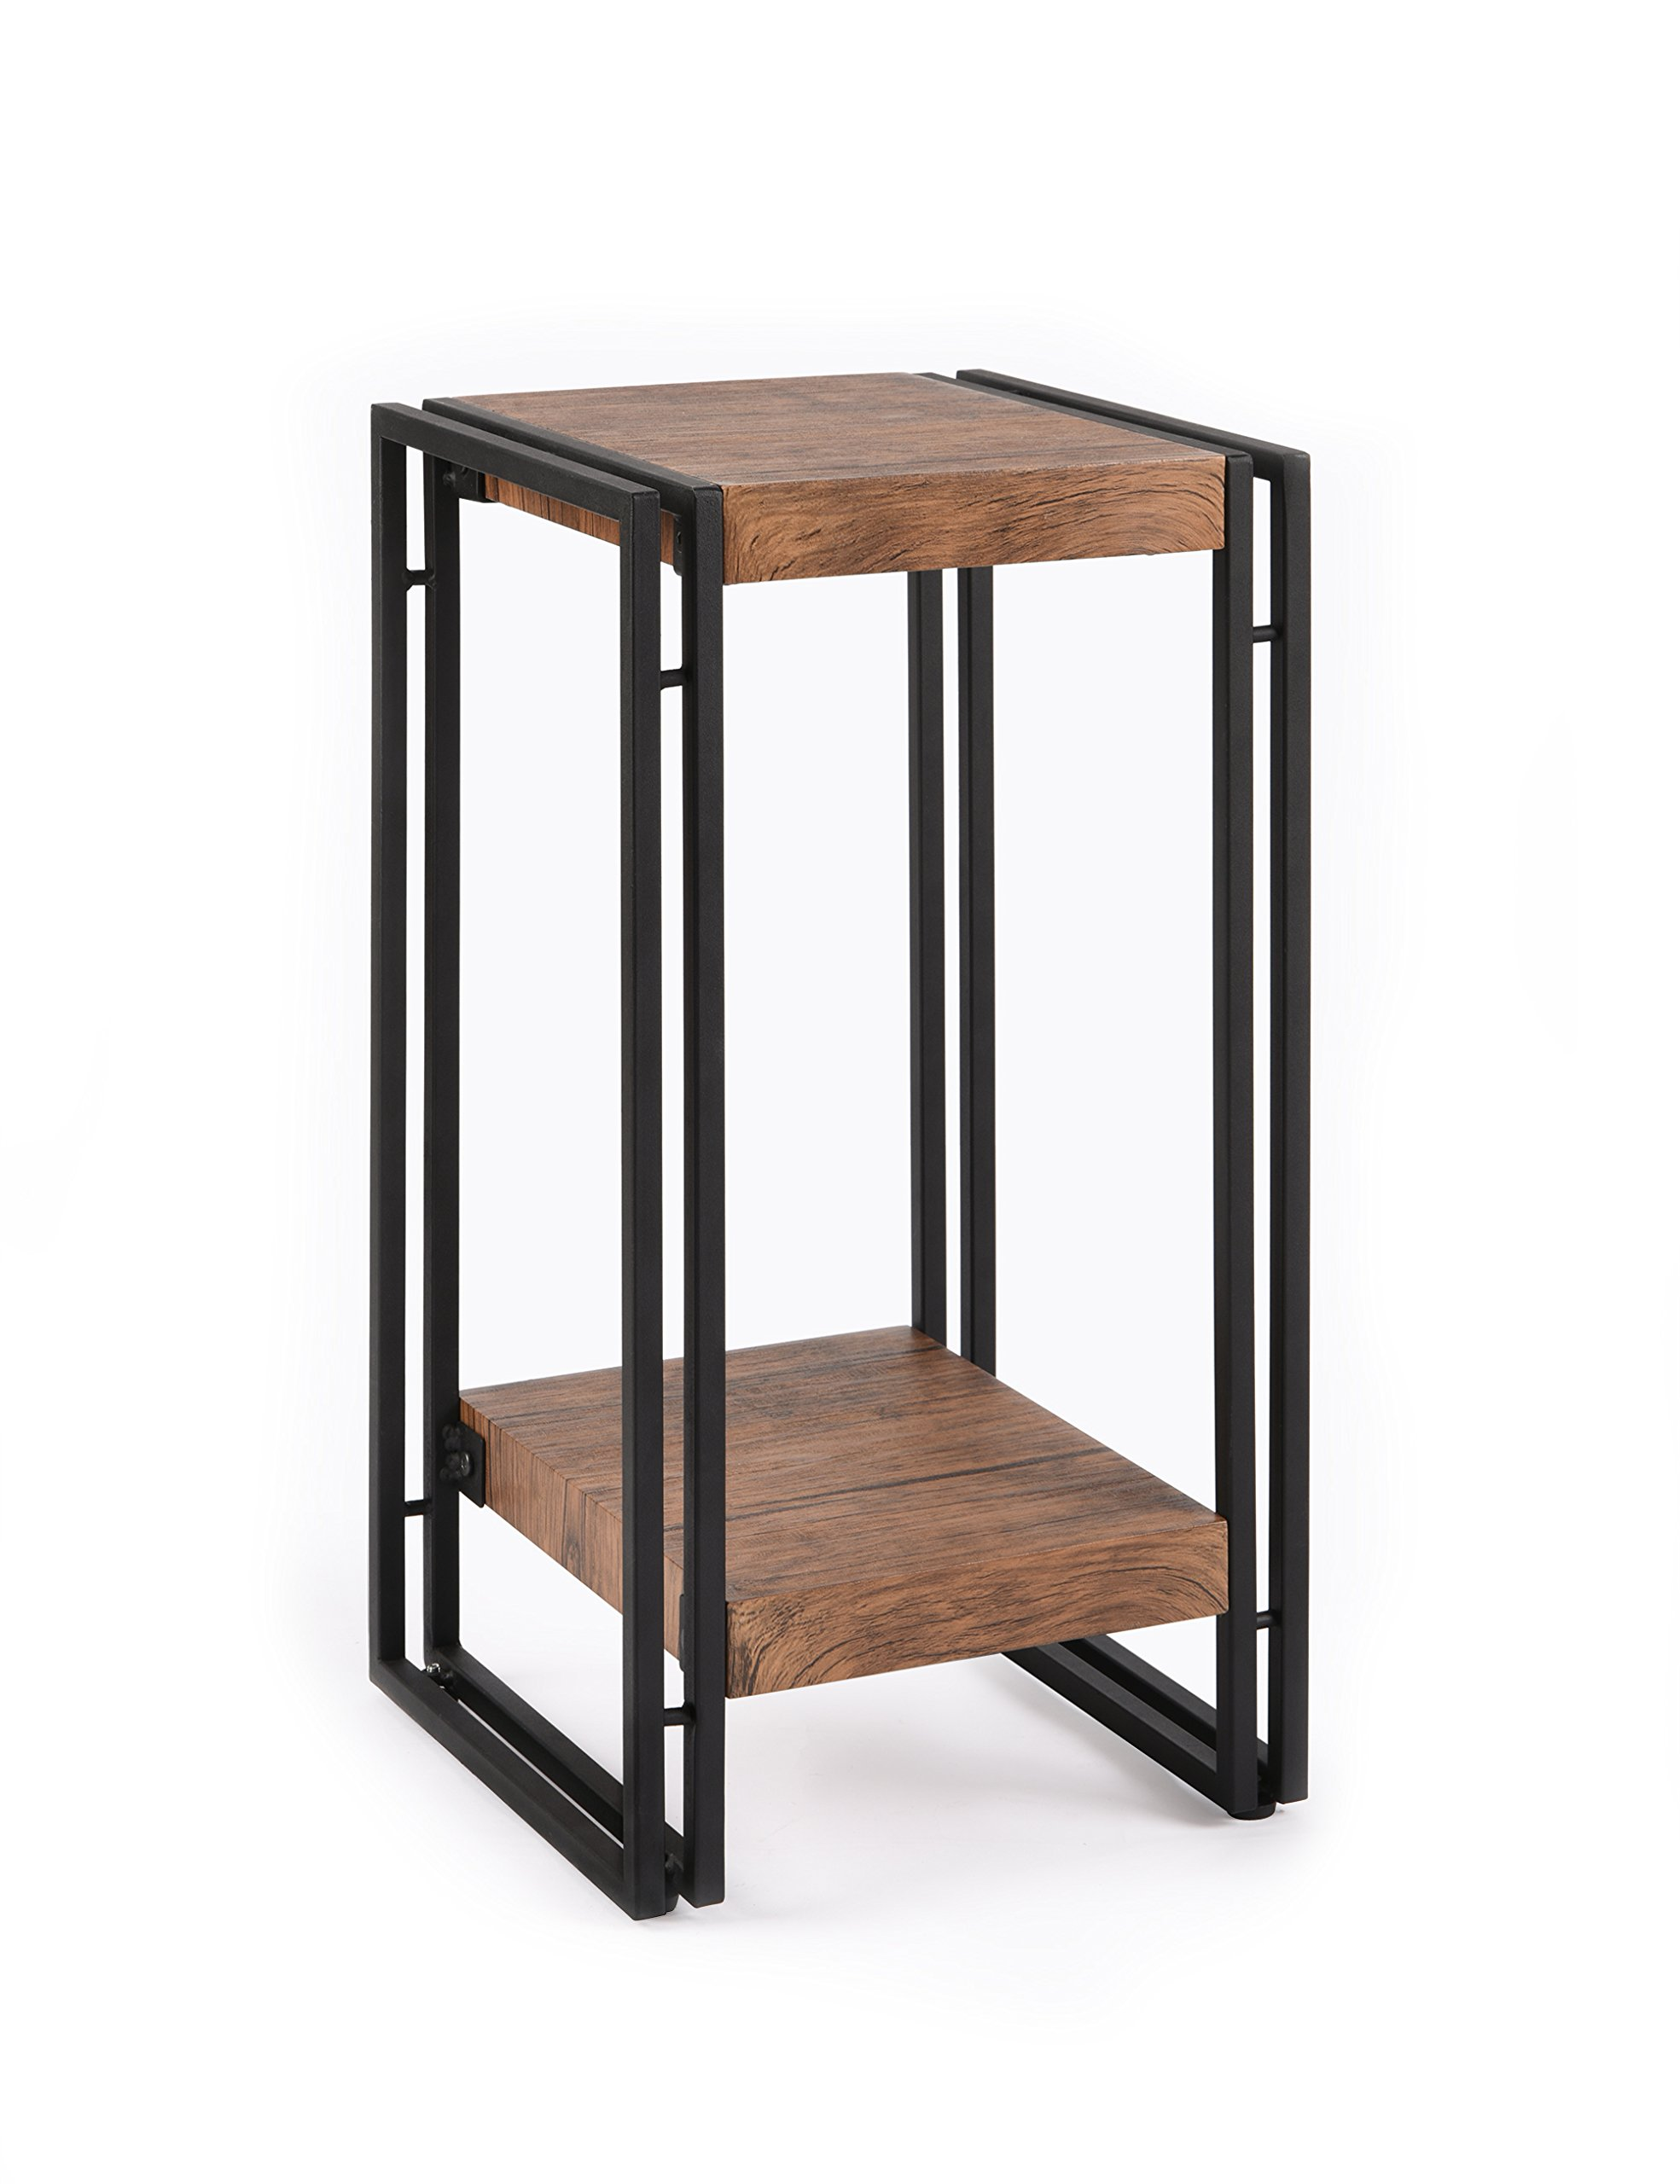 fivegiven accent side table for small spaces end table for living room bedroom 756155467815 ebay. Black Bedroom Furniture Sets. Home Design Ideas